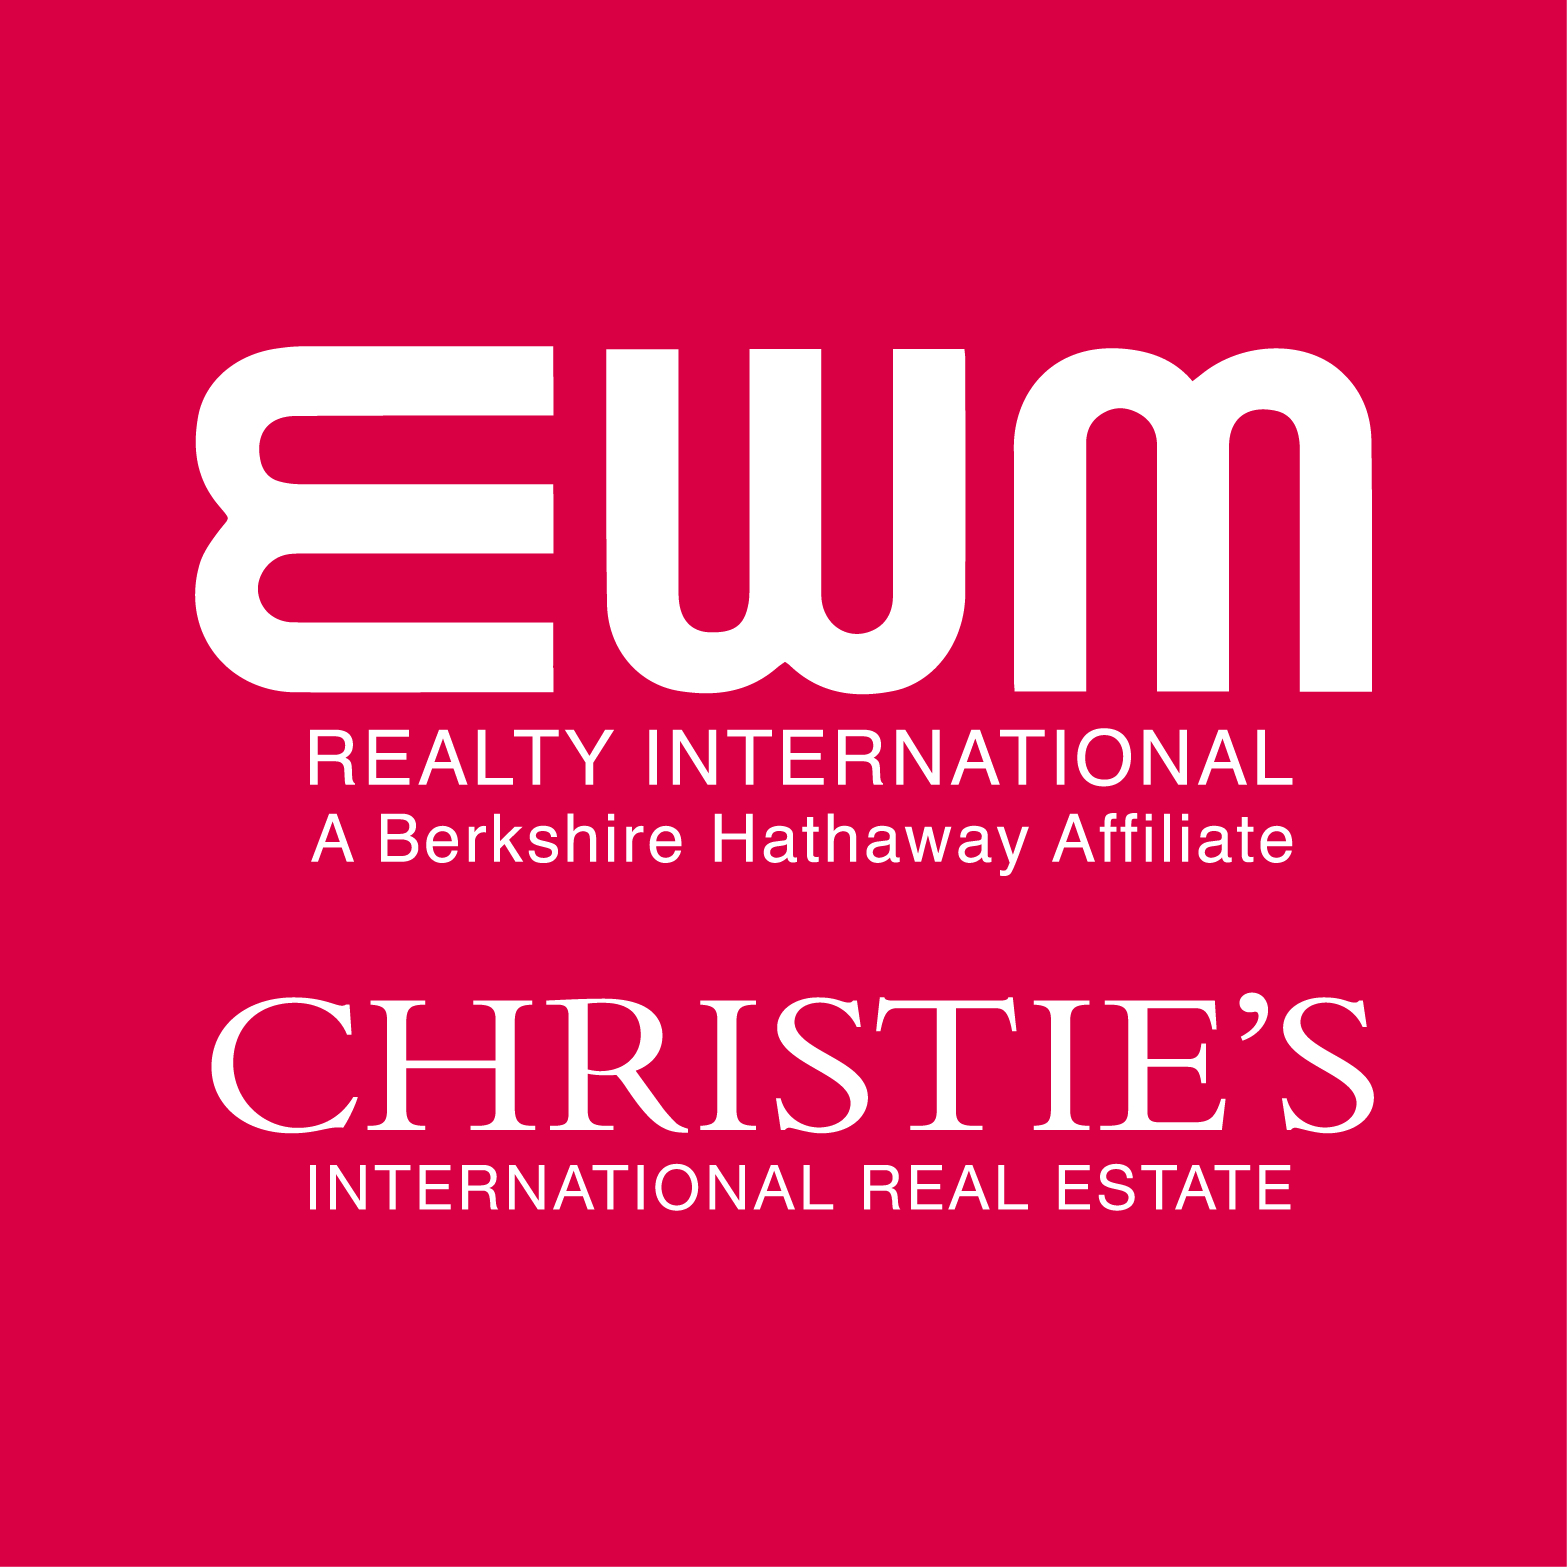 EWM Realty International CHRISTIE'S International Real Estate